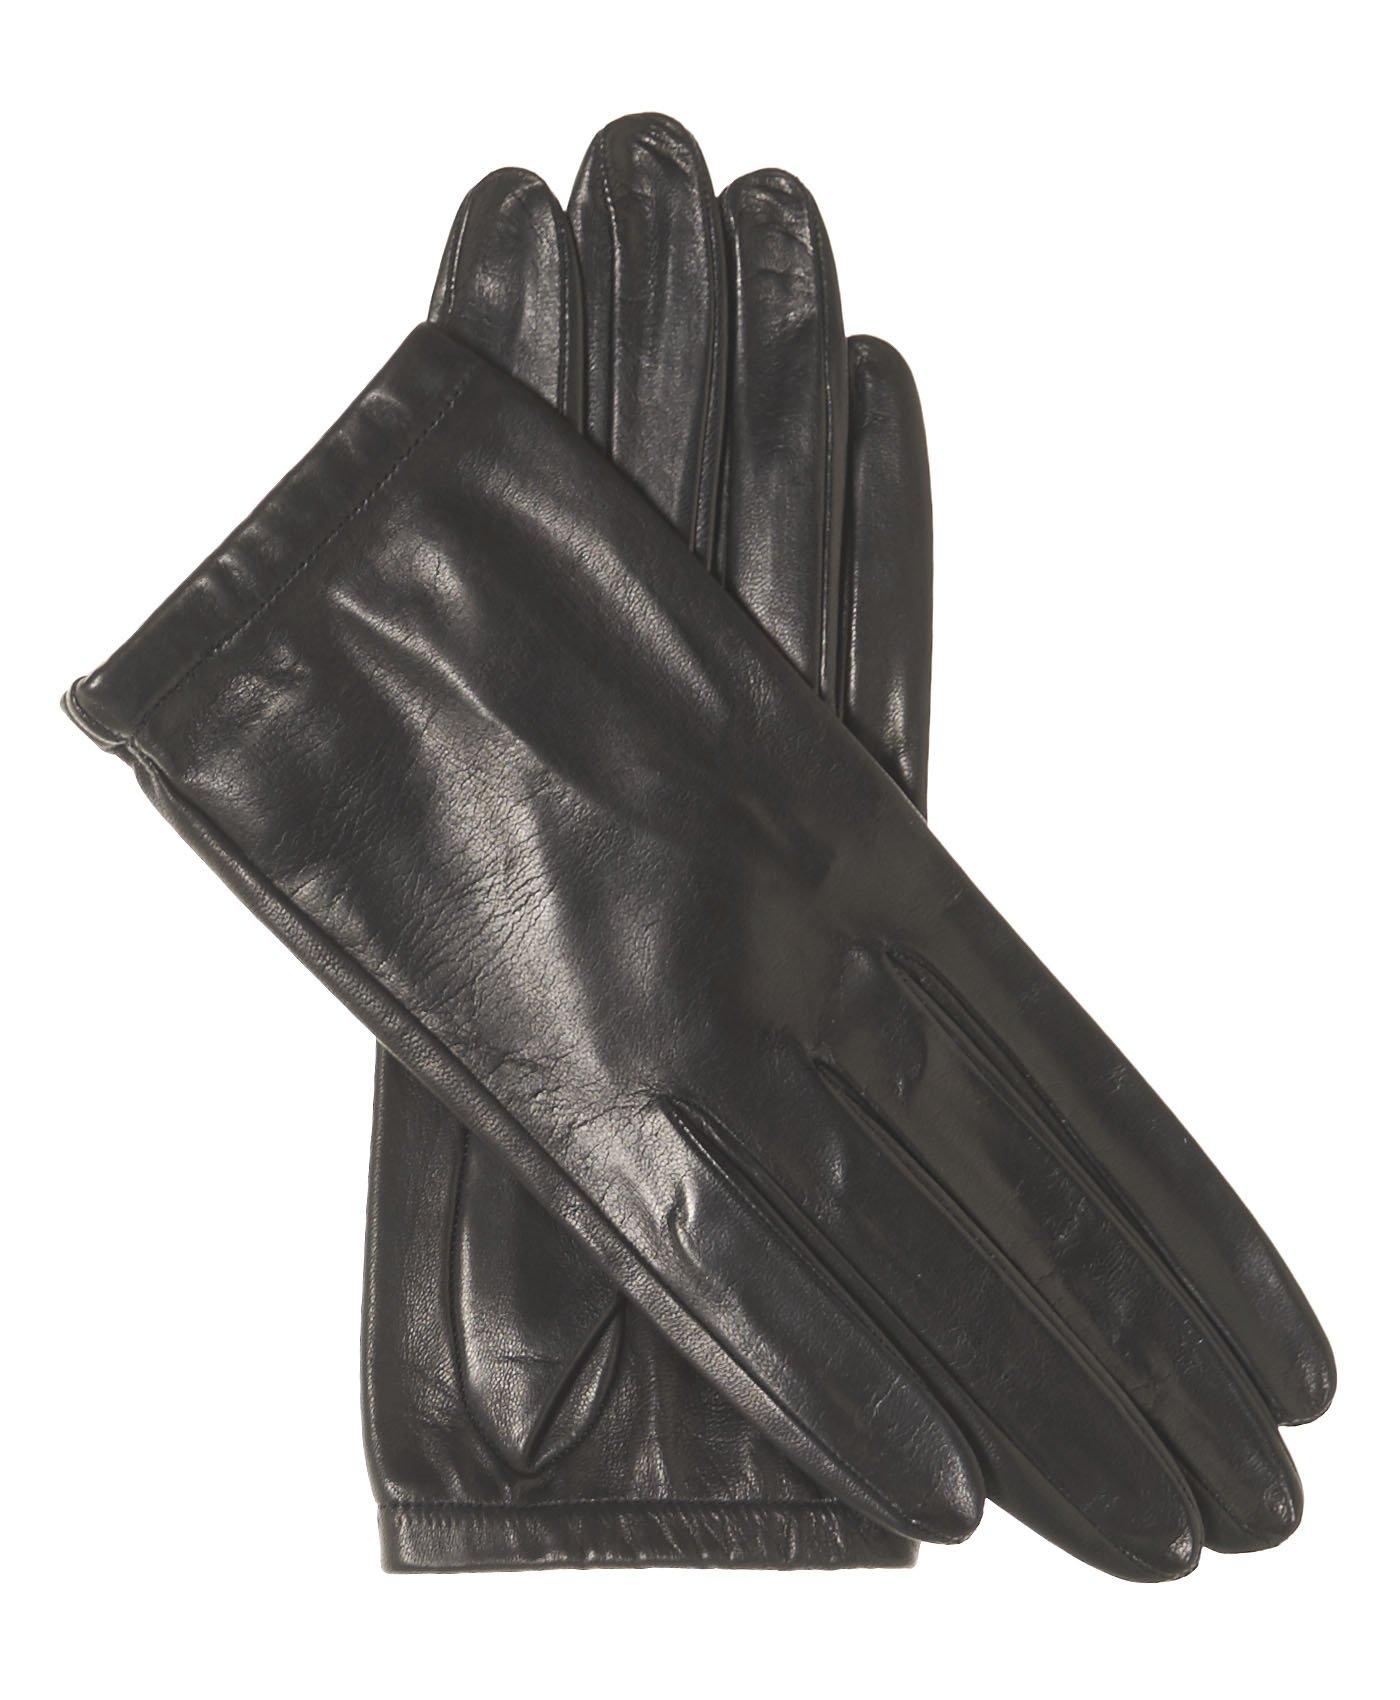 Fratelli Orsini Women's Unlined Italian Fashion Leather Gloves with Short Wrist Size 8 Color Black